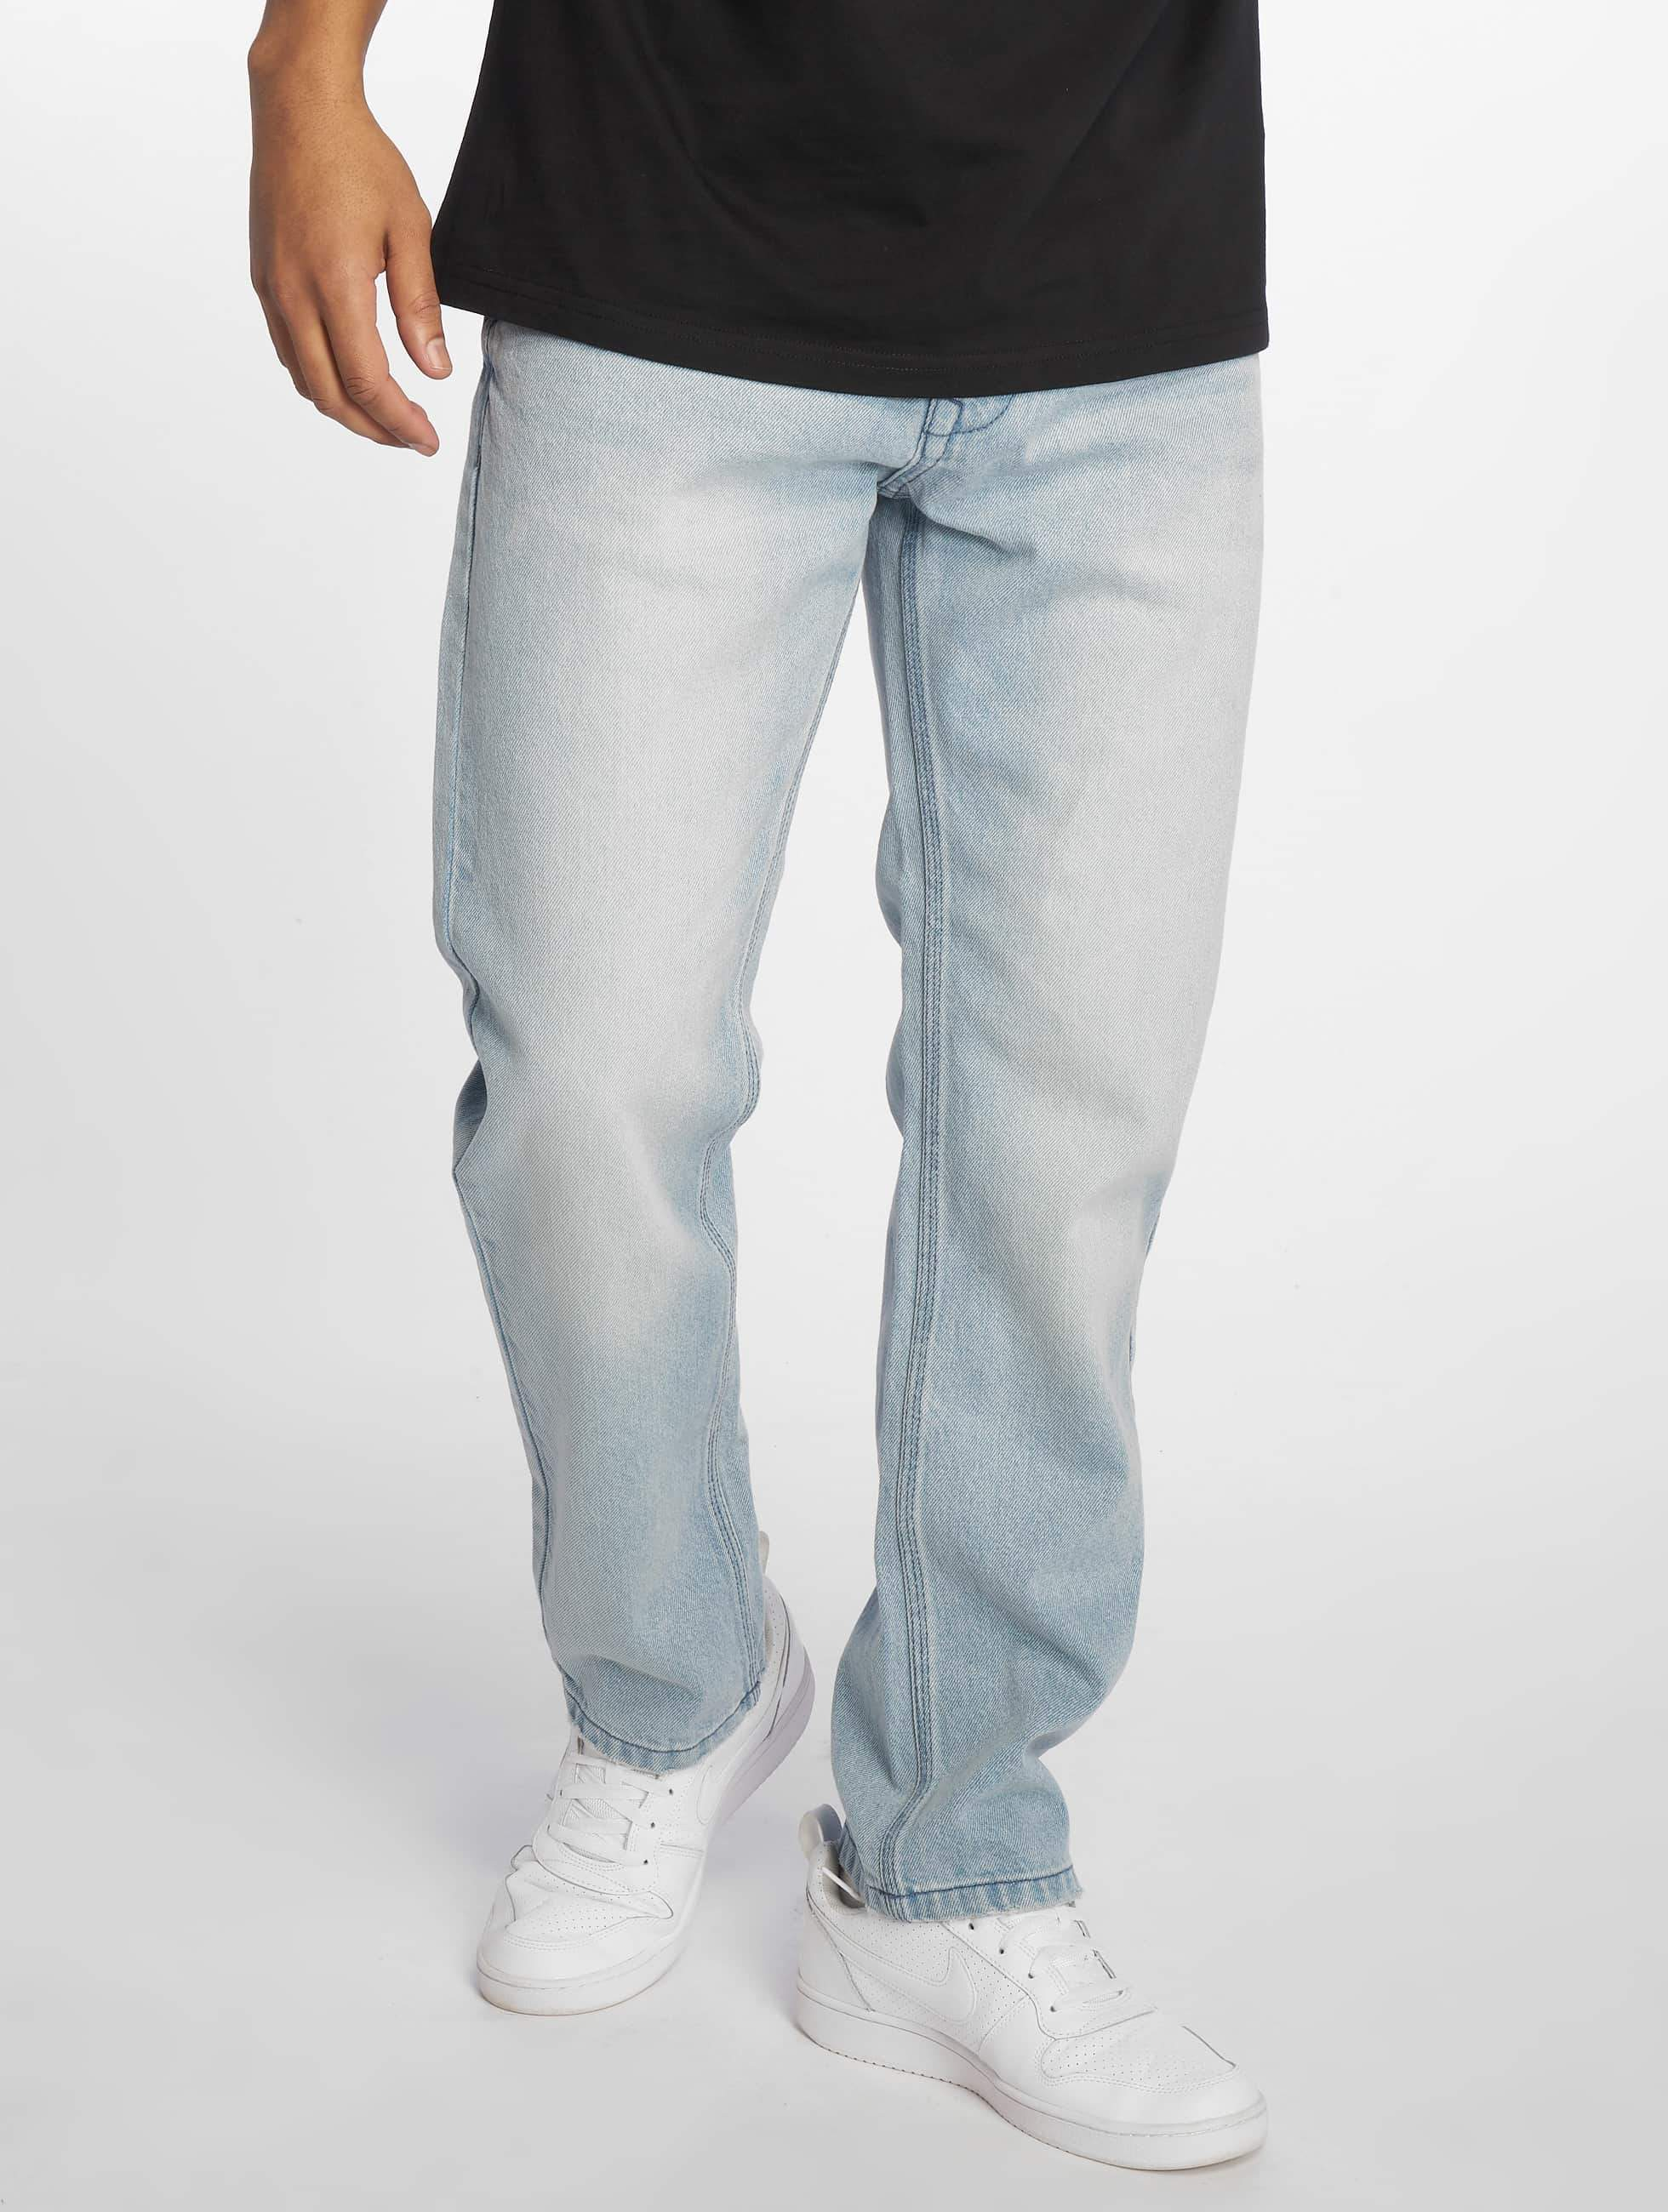 Ecko Unltd. / Straight Fit Jeans Mission Rd in blue W 40 L 34